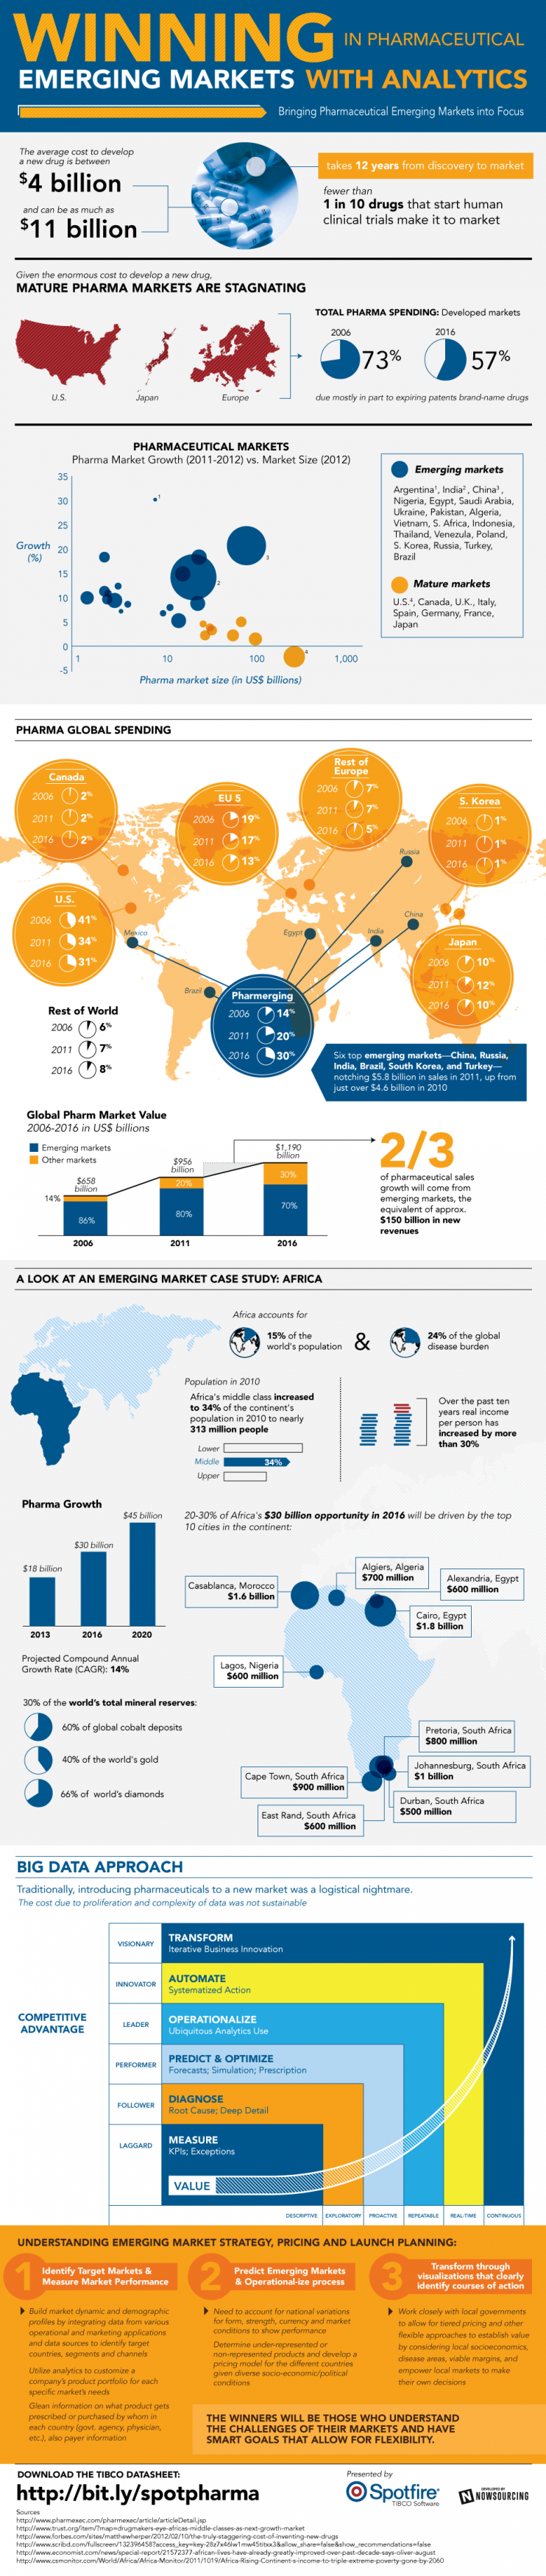 Pharmaceutical Emerging Markets Infographic